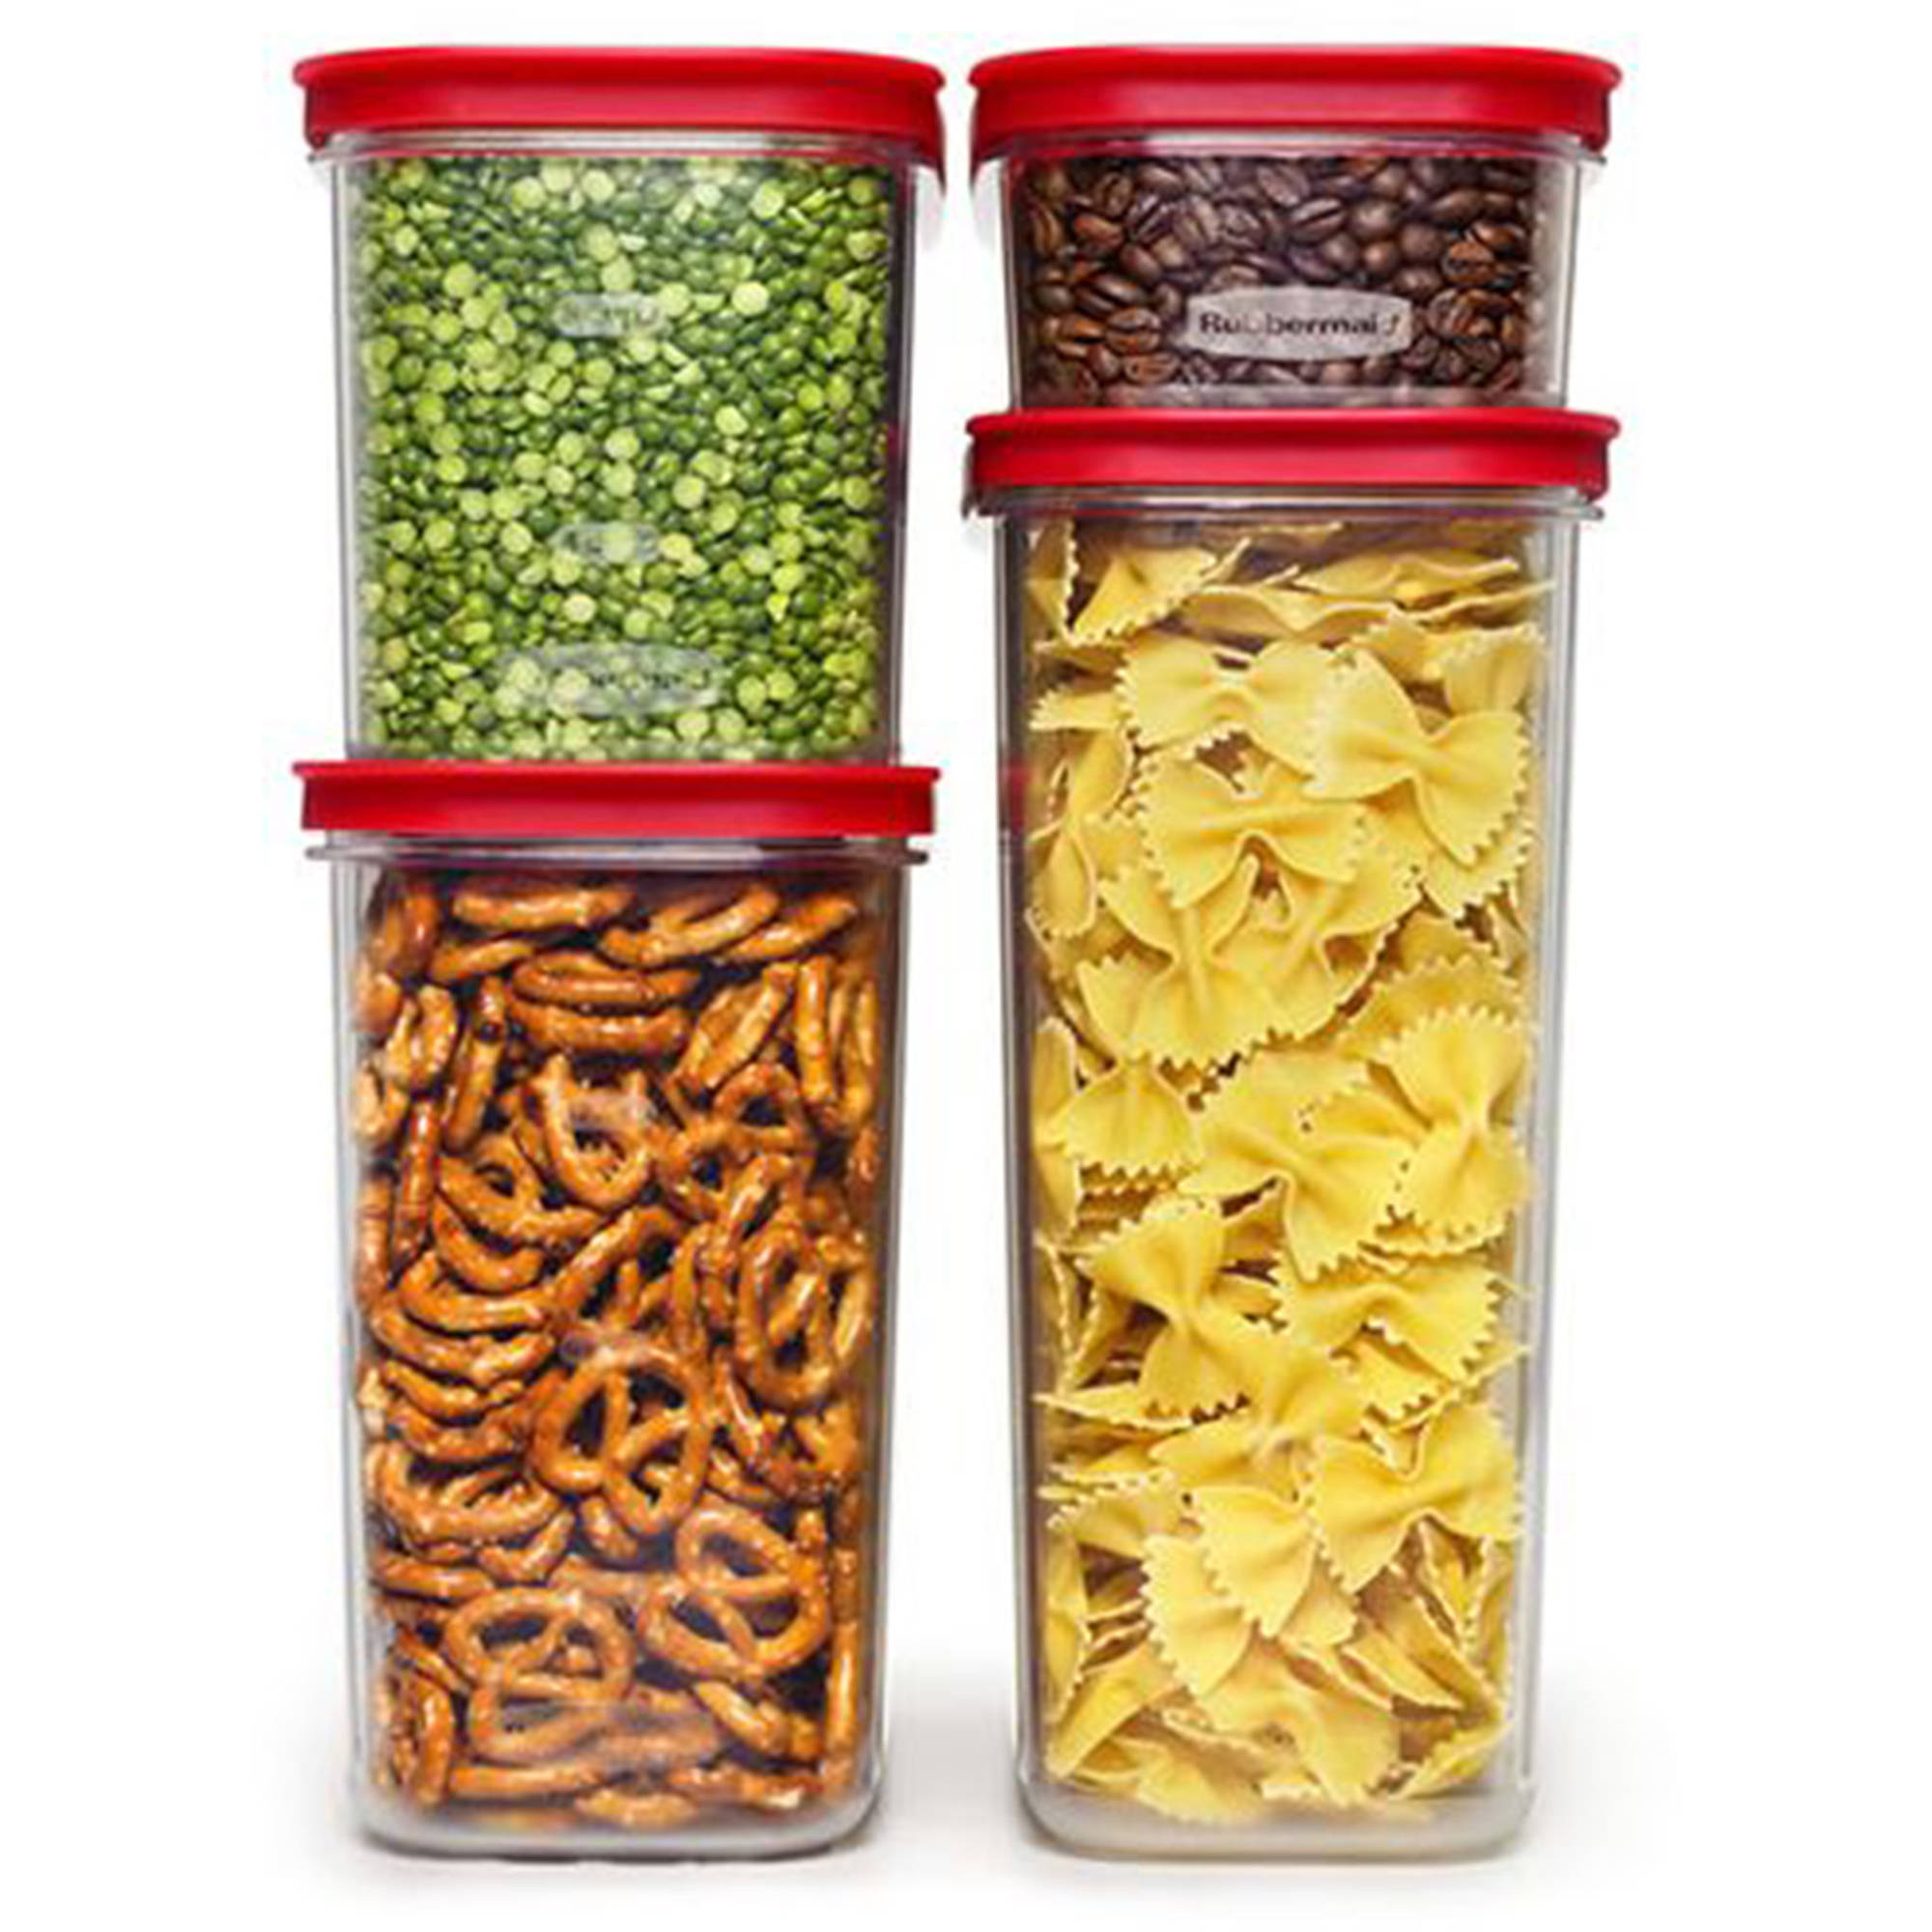 Rubbermaid Modular Canisters, Premium Food Storage Container, BPA-free Zylar, 8-piece Set